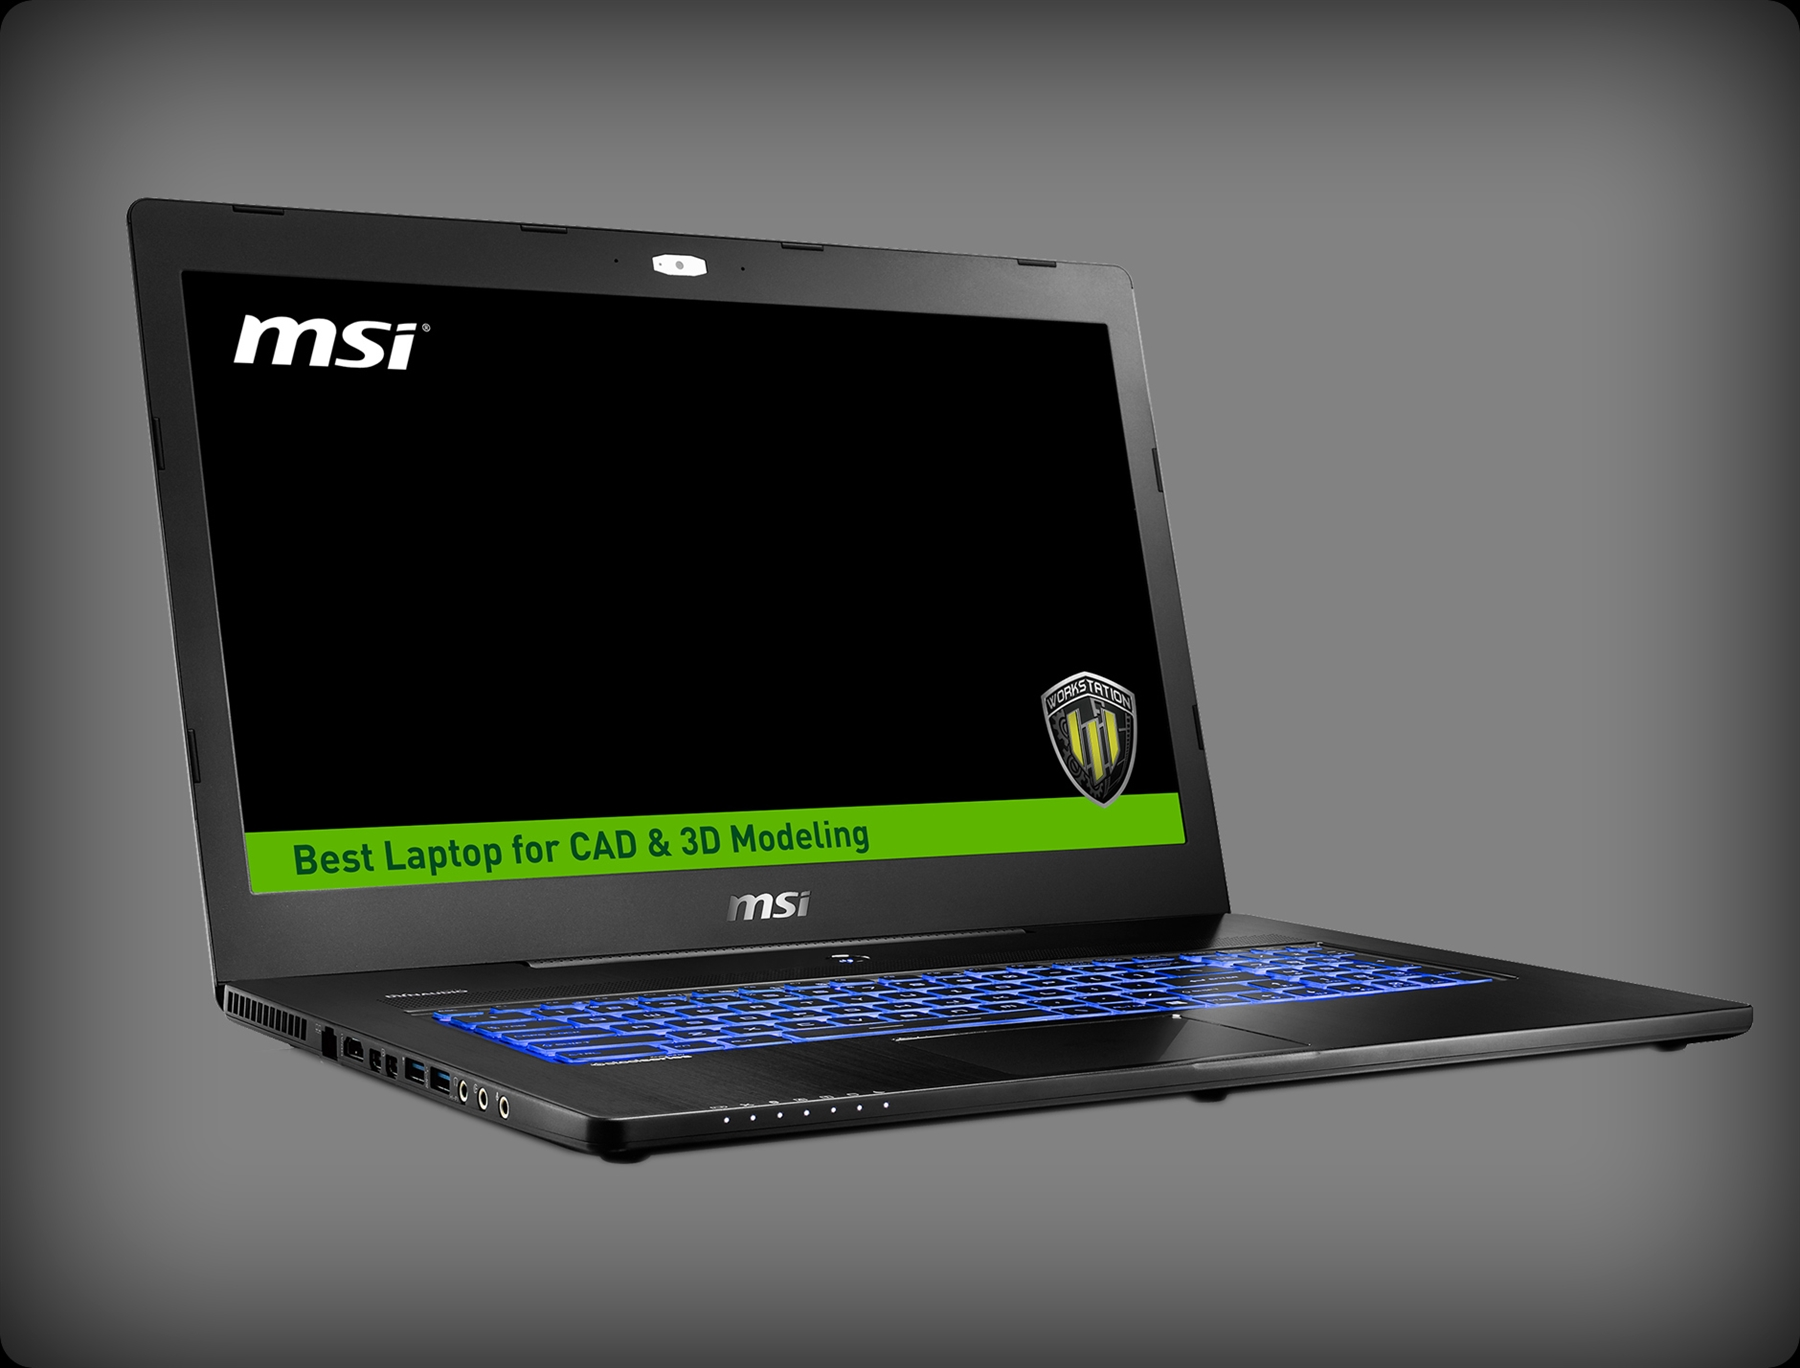 MSI WT72 2OL Driver for Windows 7